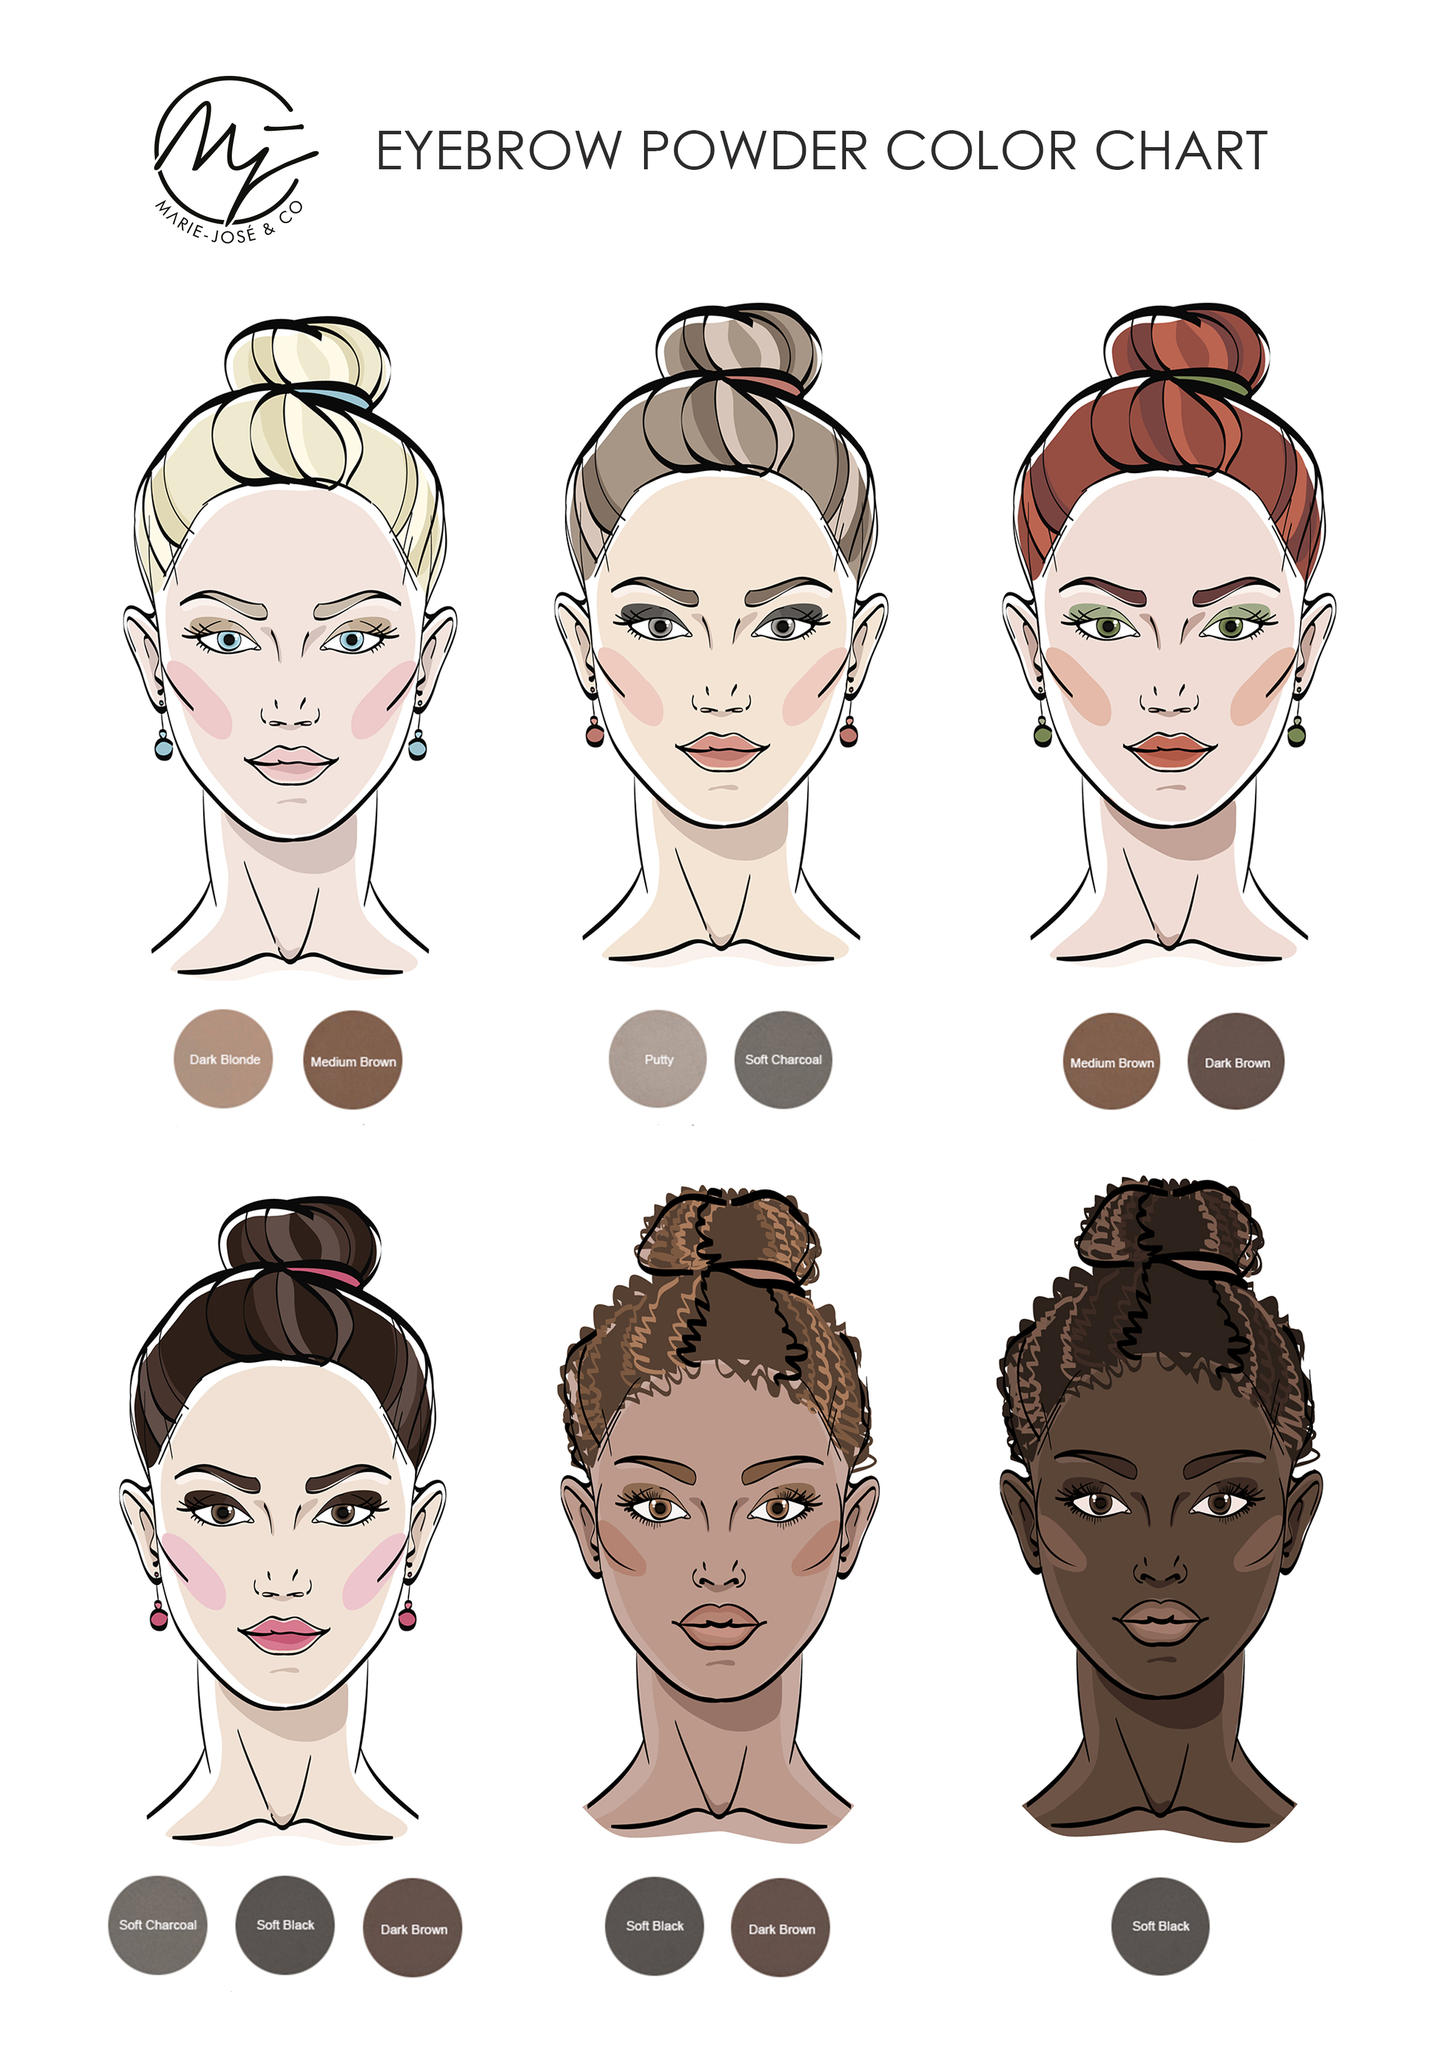 Eyebrow powder available in 6 beautiful colors marie jos co find your best colour match use our step by step tutorial for applying eyebrow powder to achieve perfectly enhanced brows nvjuhfo Choice Image